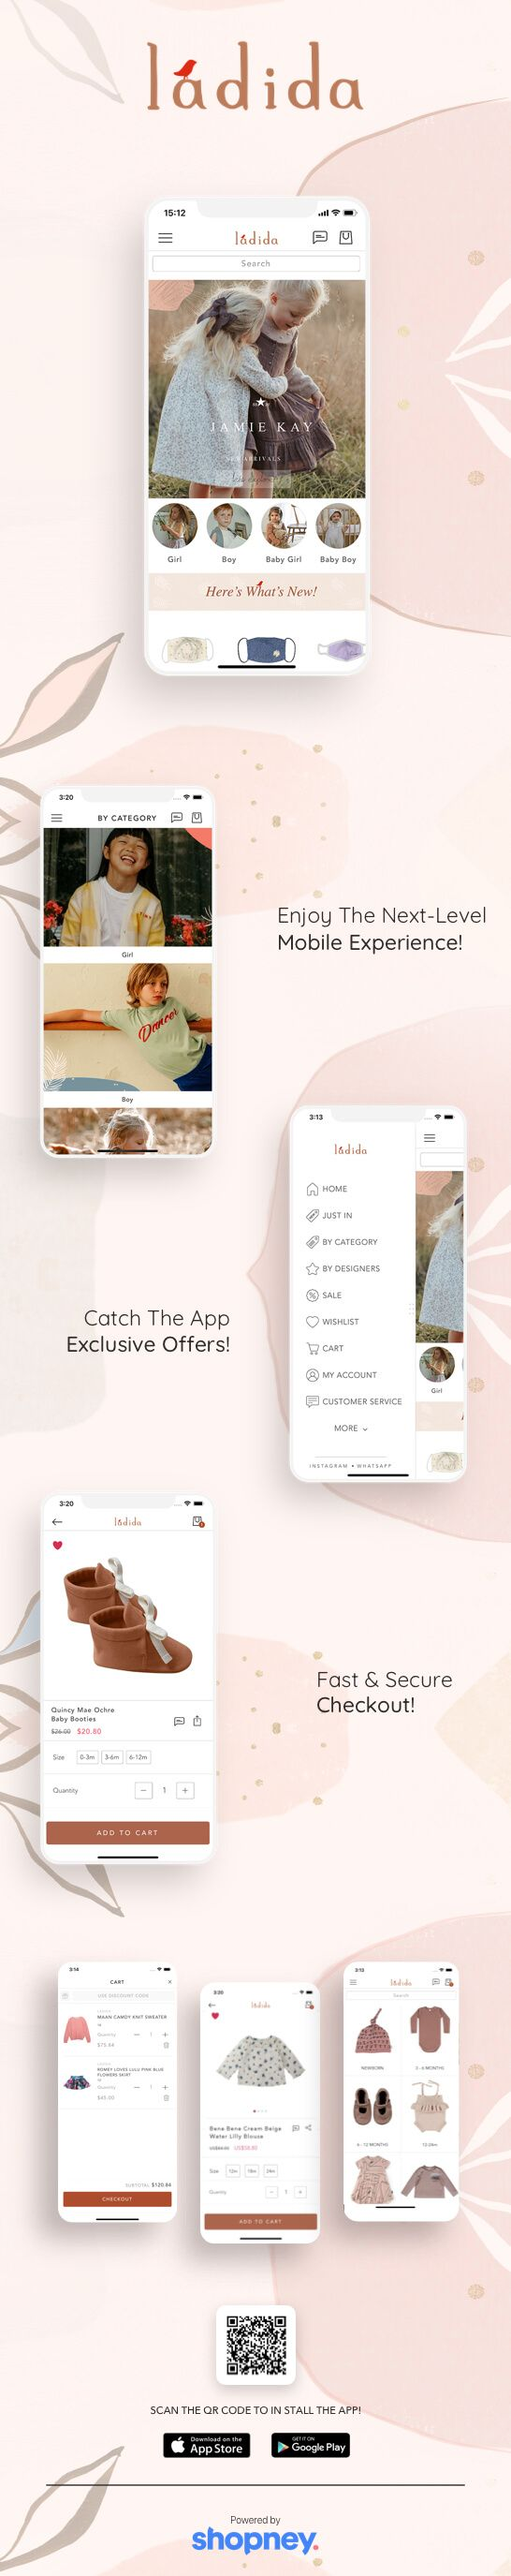 Ladida's mobile app built by Shopney